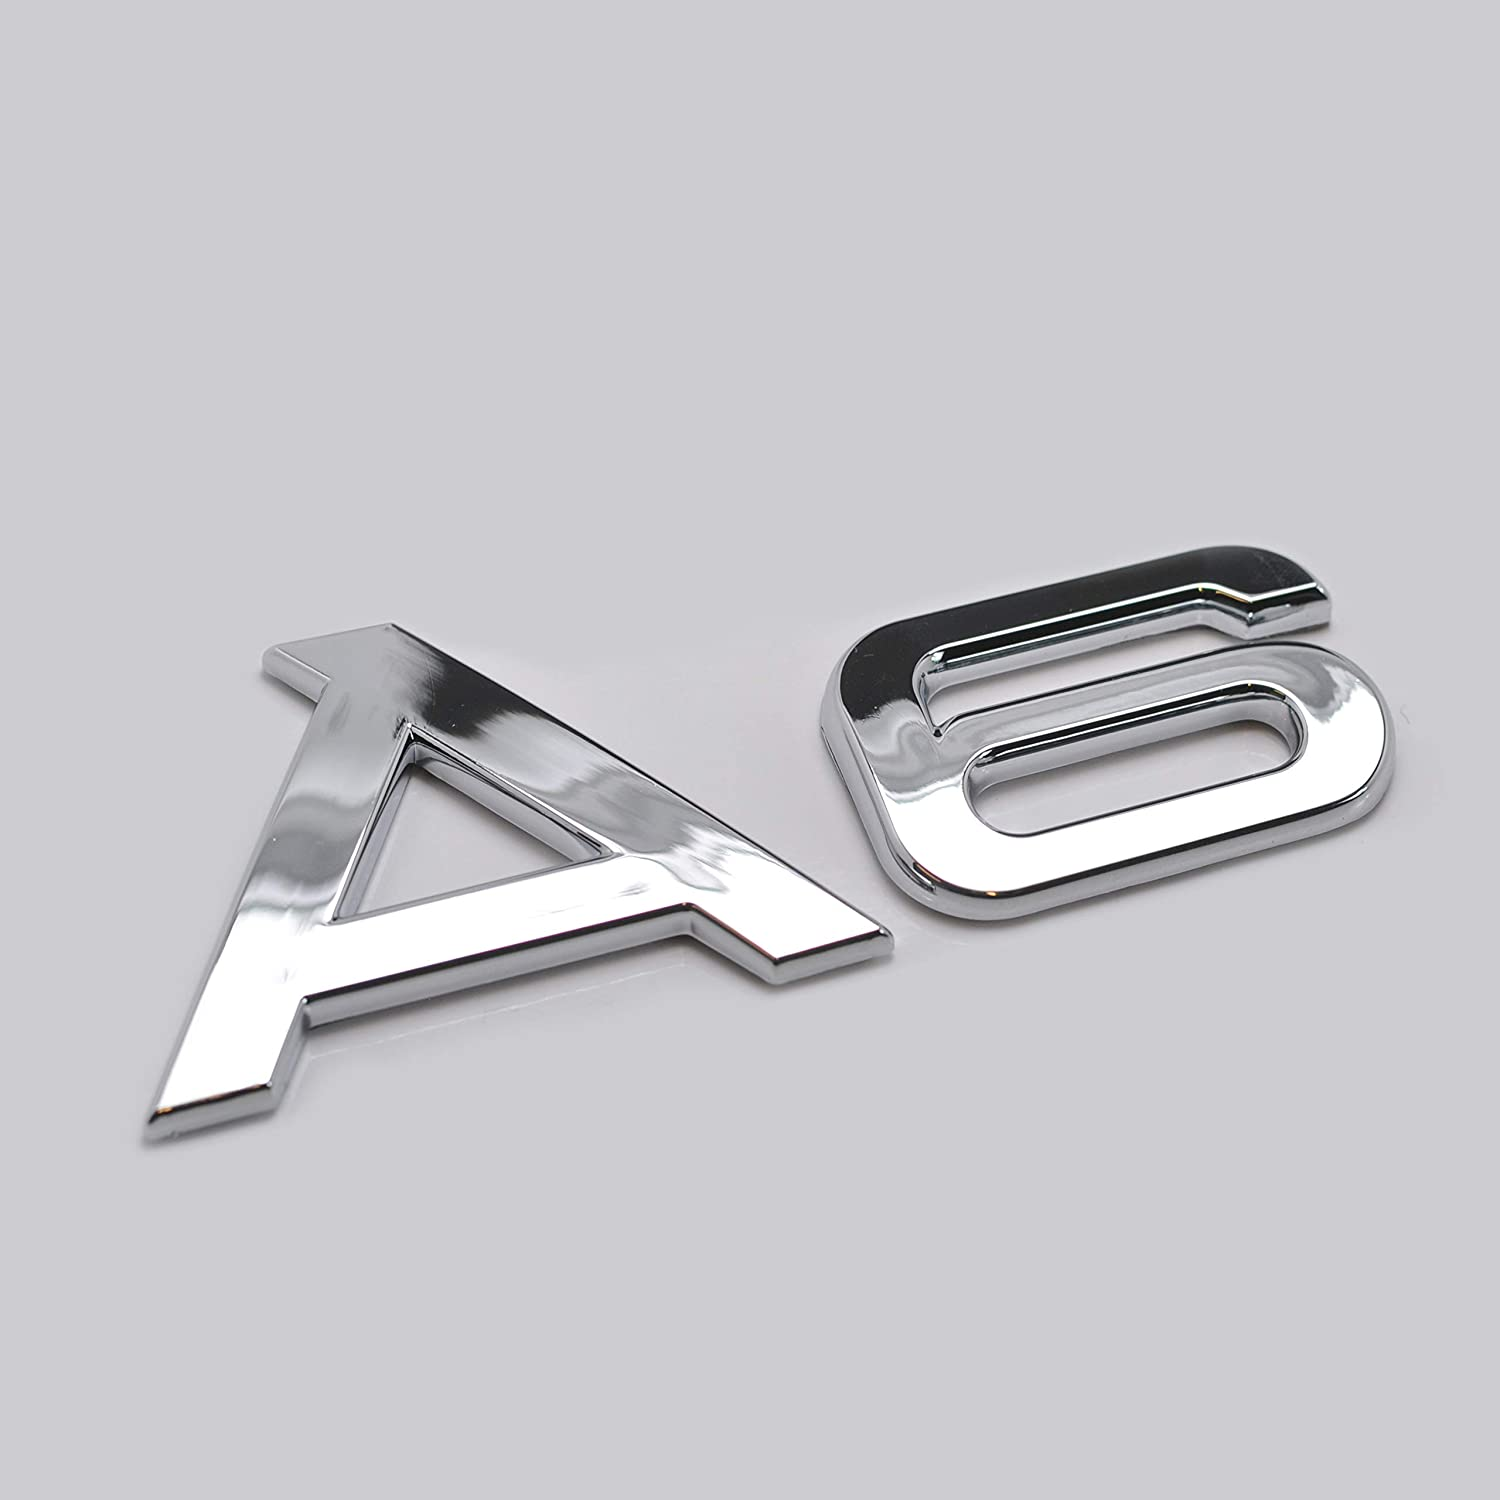 Silver Chrome A6 Lettering Rear Boot Lid Trunk Badge Emblem For A6 Models